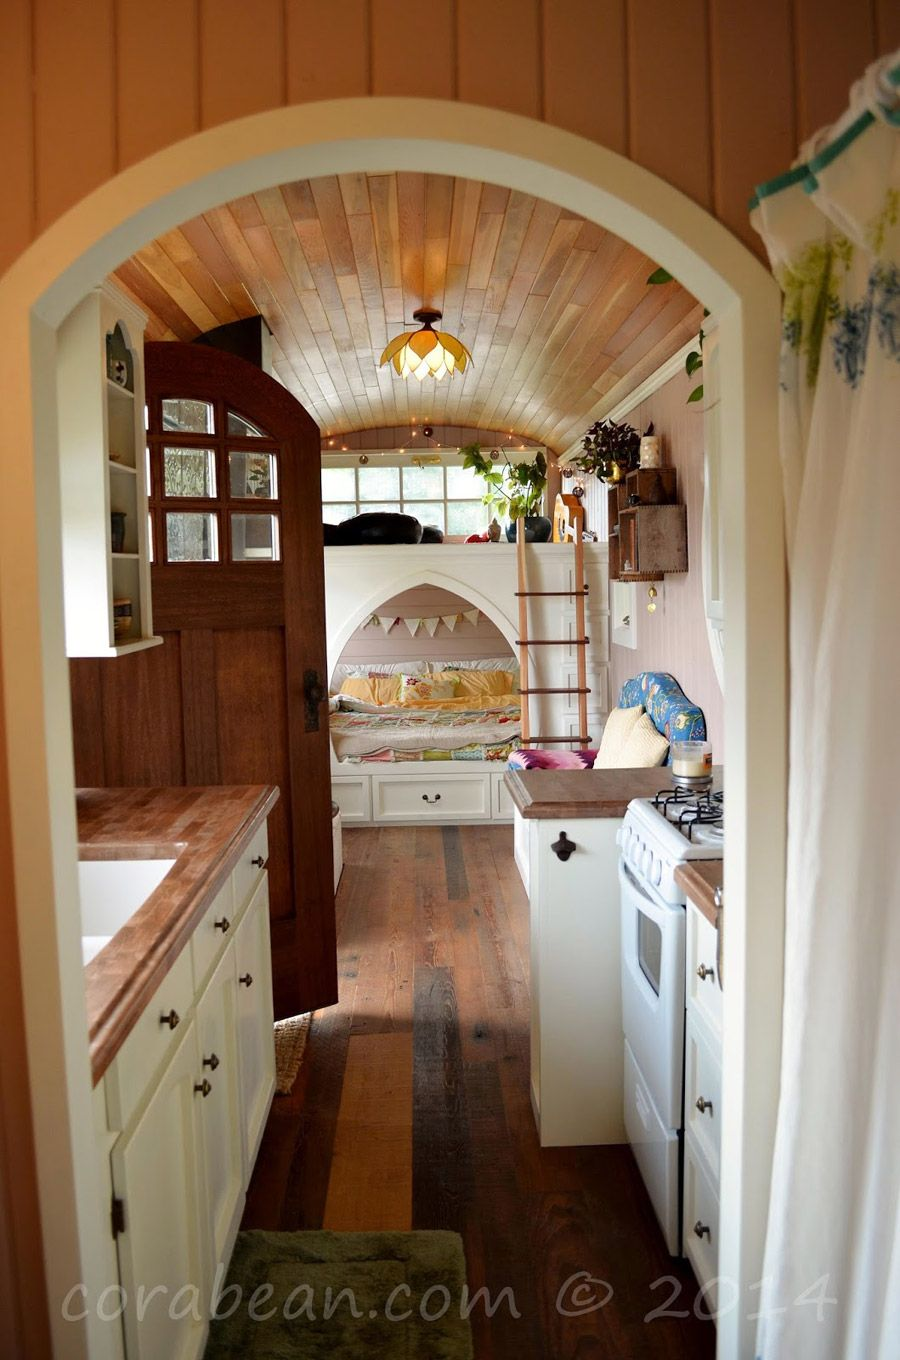 Converting sheds into livable space miniature homes and spaces - Bus School Bus Small Space Bus Conversion Bus Home Bus House School Bus Conversion Sustainable Living